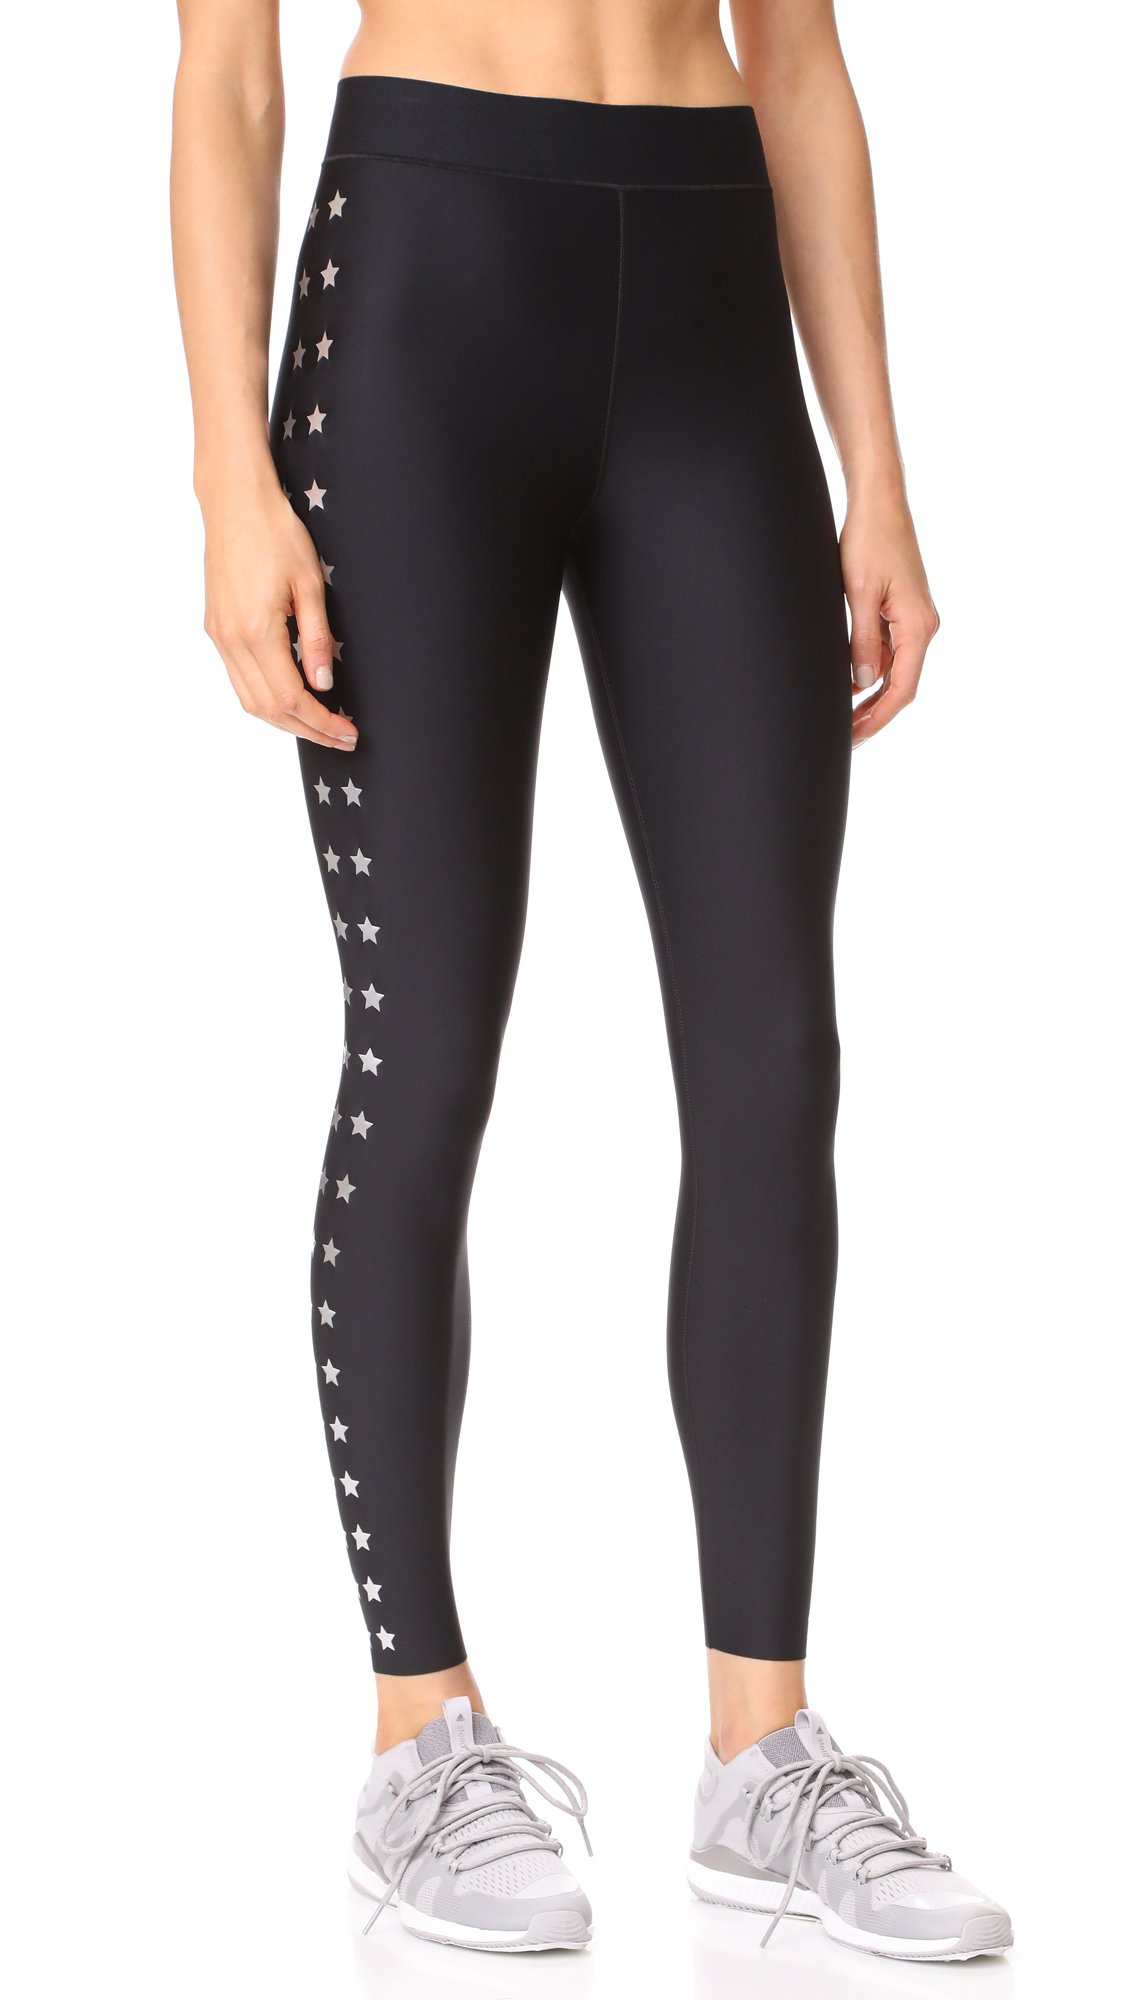 Ultracor Women's Ultra Matte Flash Knockout Leggings, Nero/Silver, X-Small by Ultracor (Image #1)